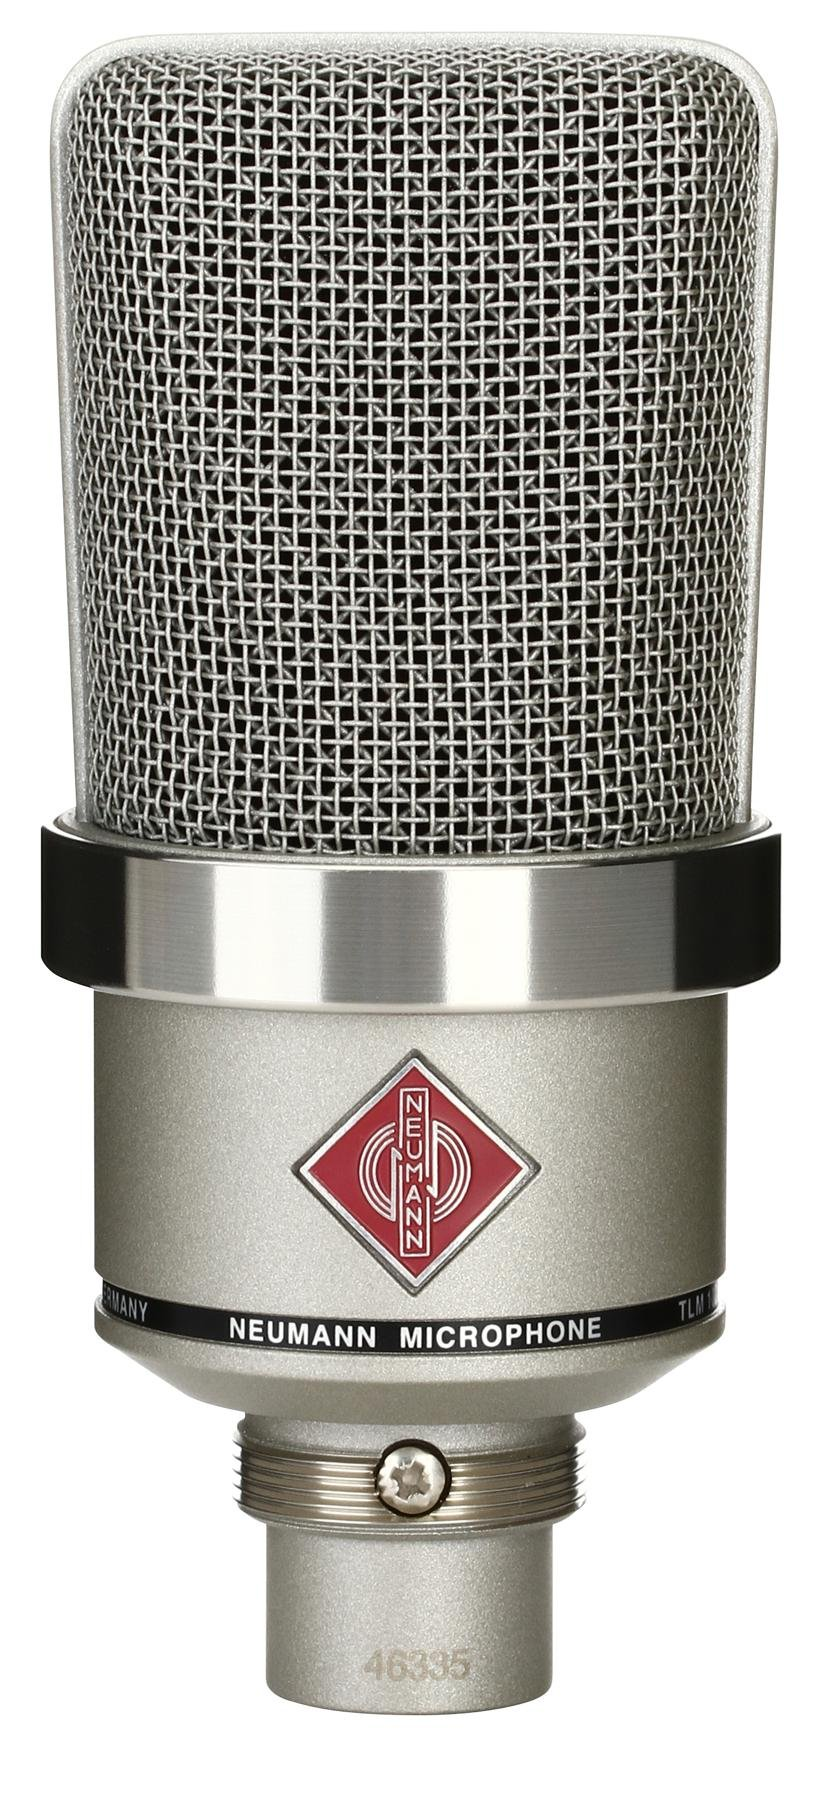 Neumann Tlm 102 Large Diaphragm Condenser Microphone Nickel Usb Powered Stereo Computer Speaker Electroniccircuit Image 1